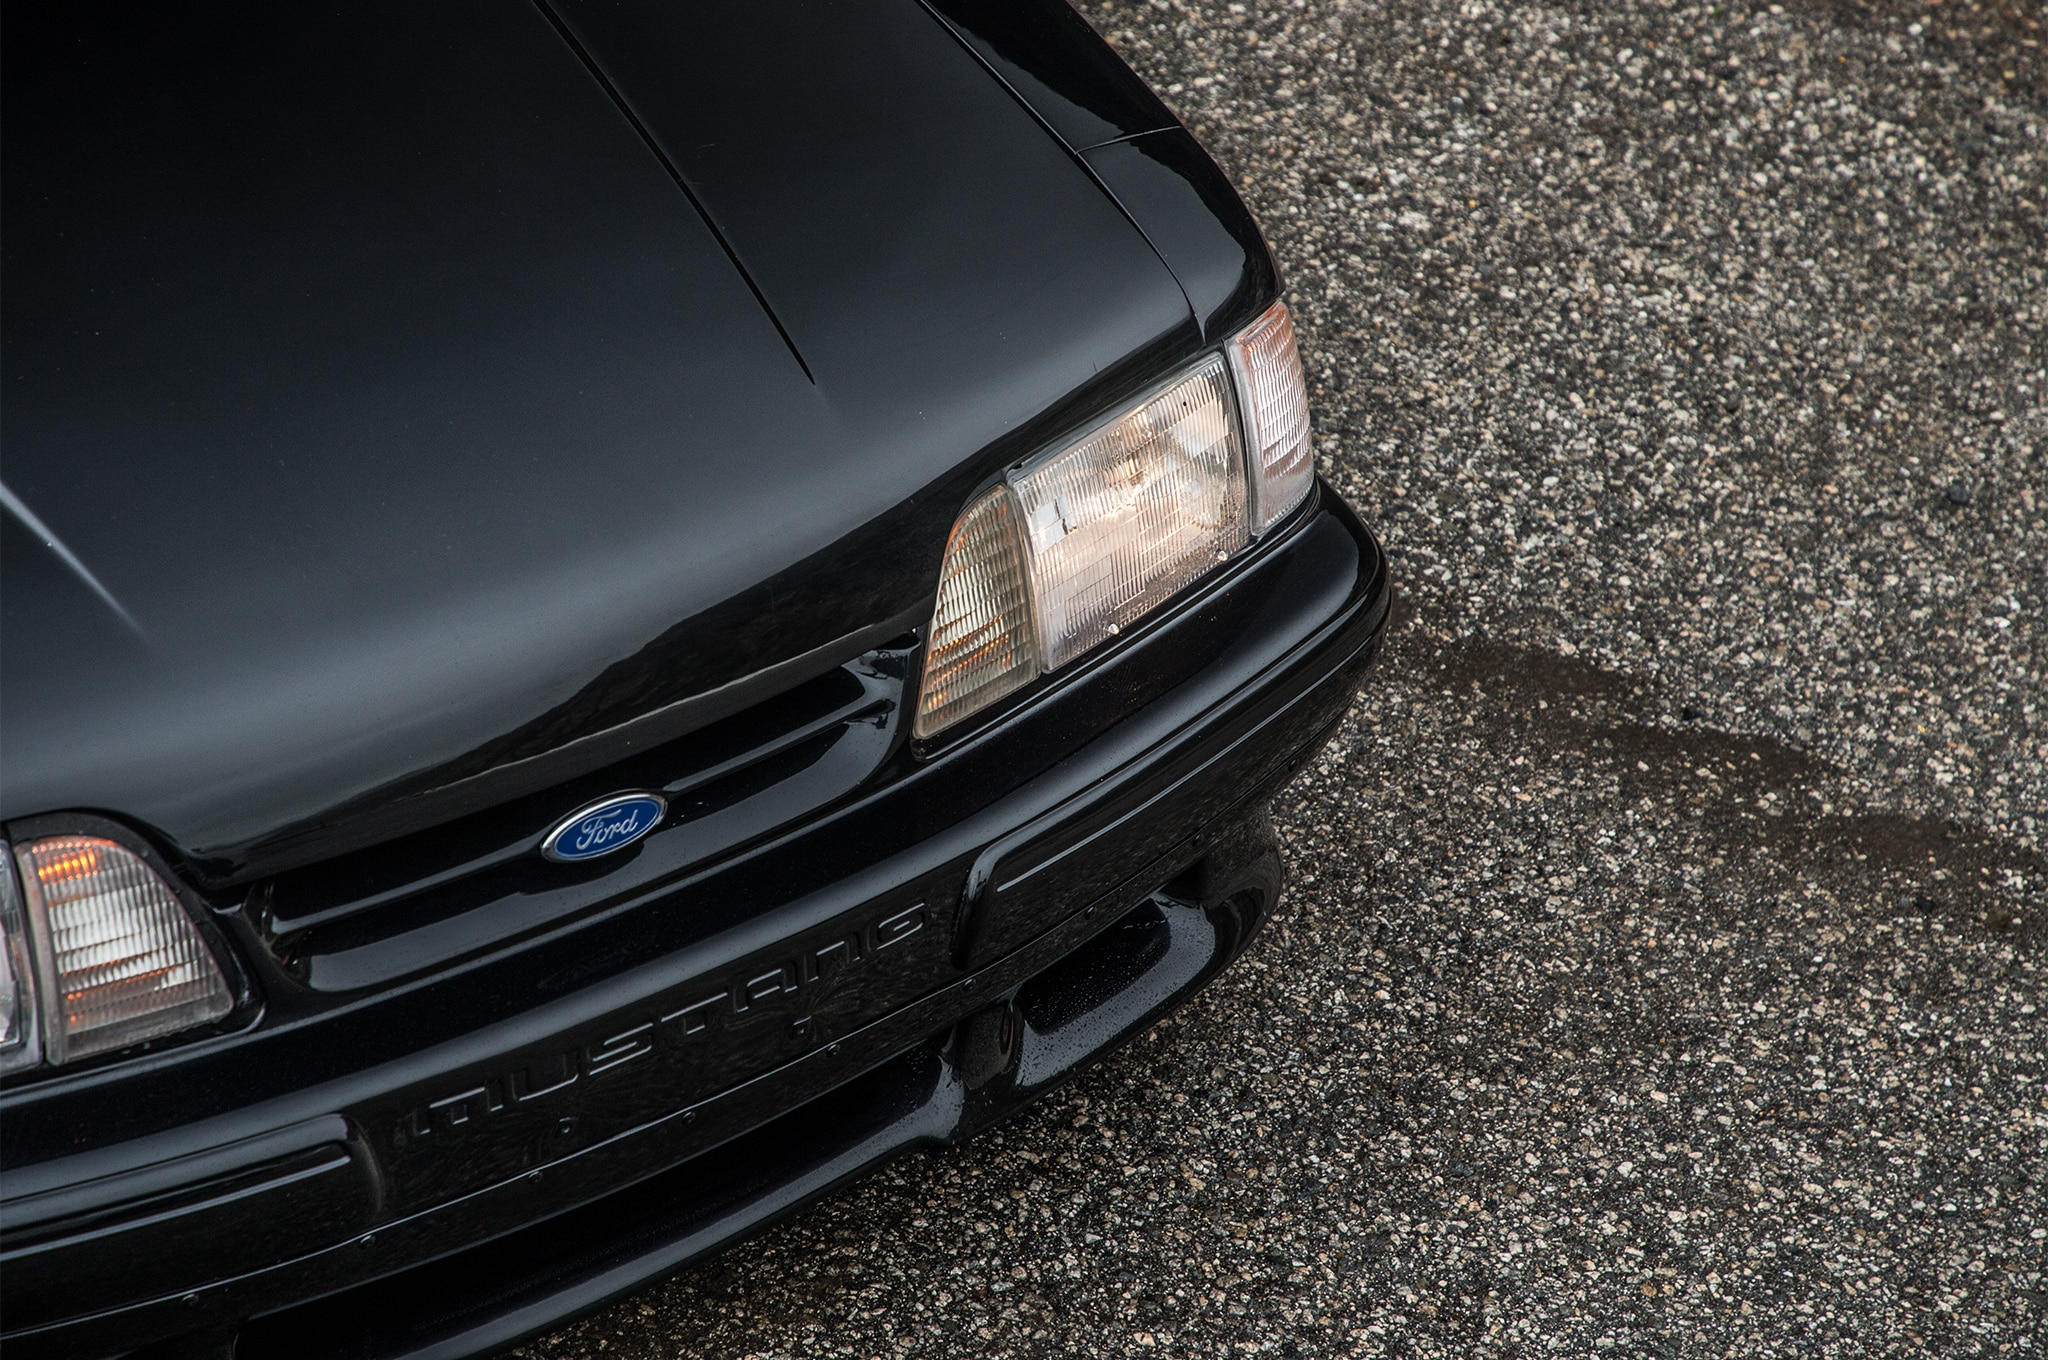 1988 Ford Mustang LX 5 0 SSP Front End Detail 04